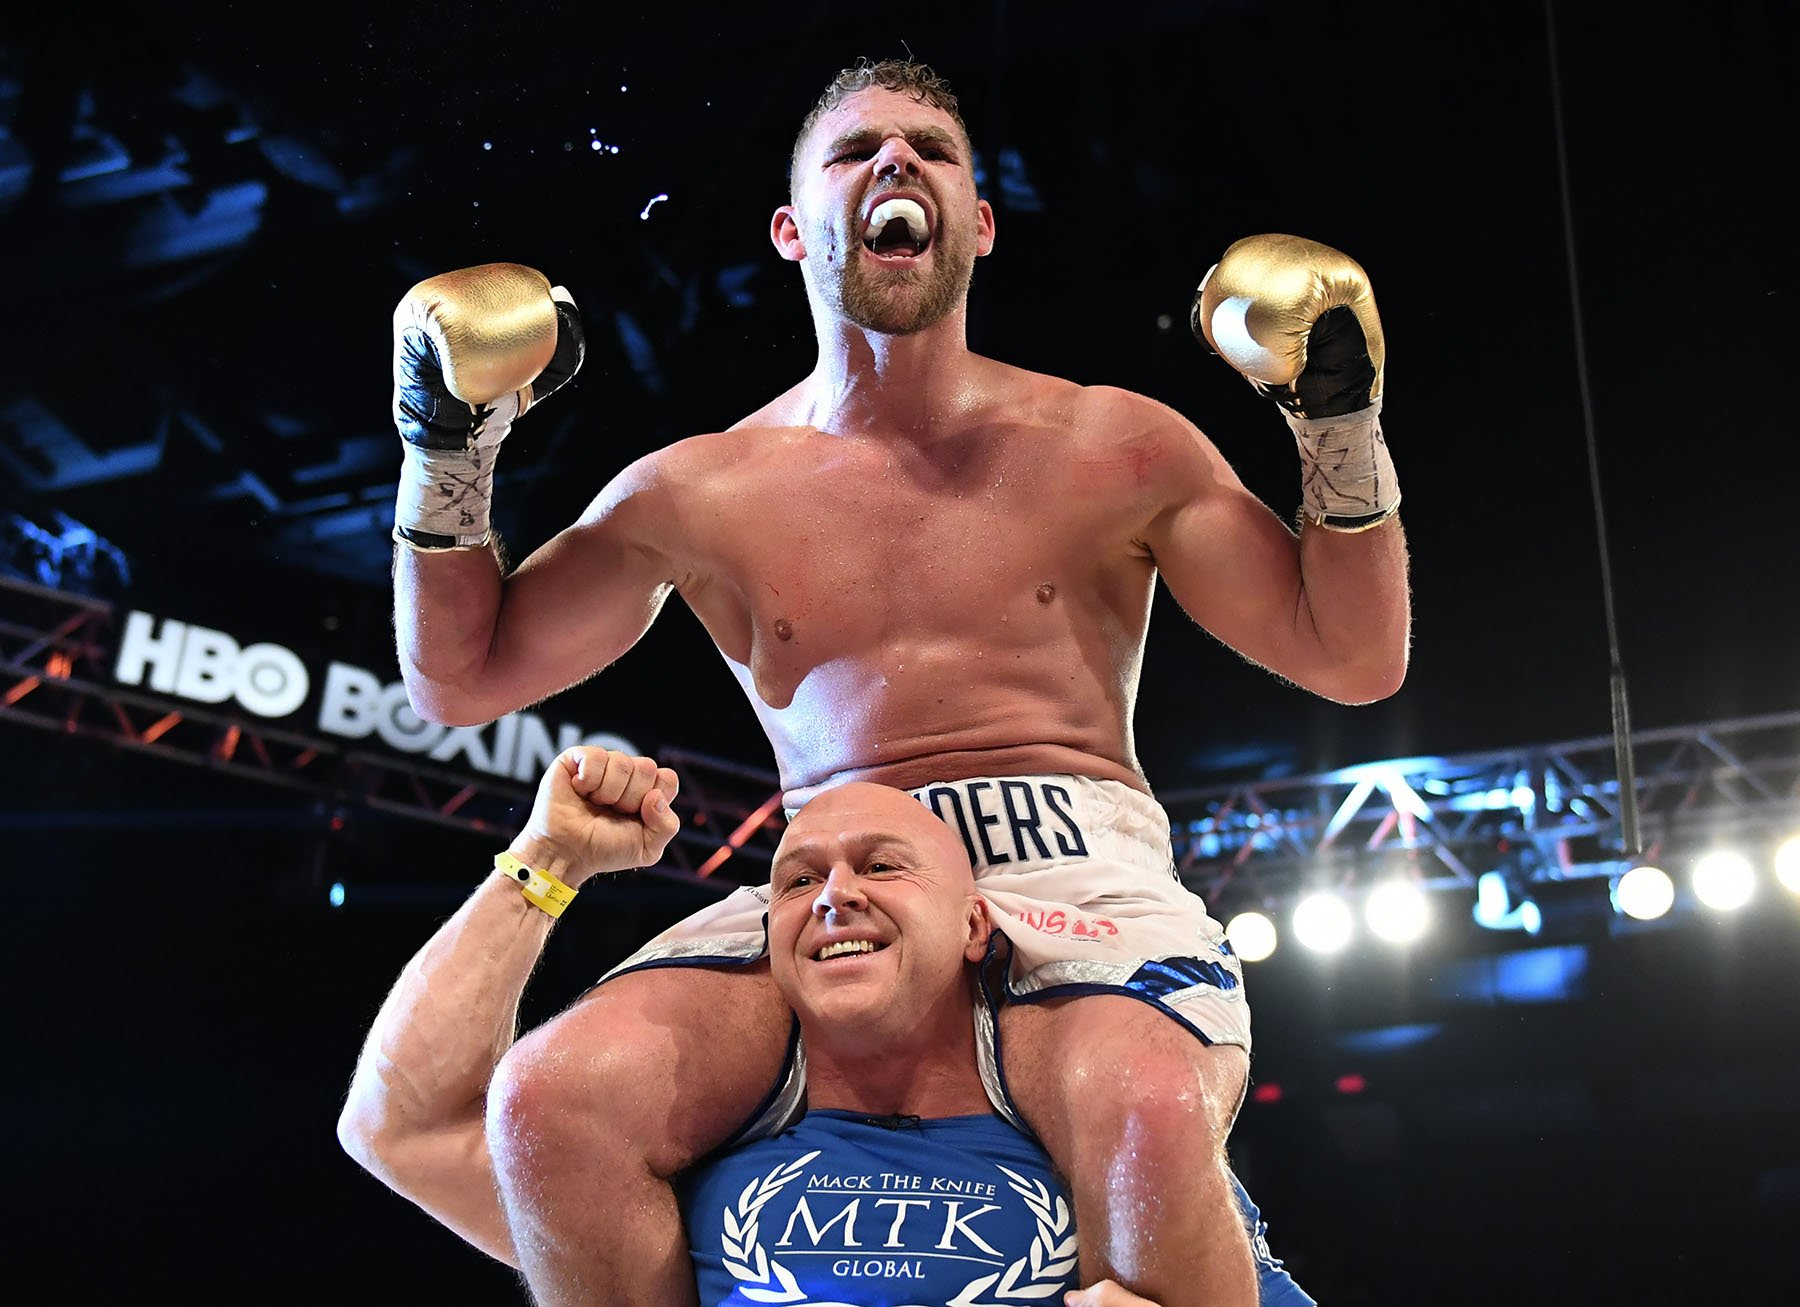 Billy Joe Saunders Calls Out GGG After Dominating Lemieux